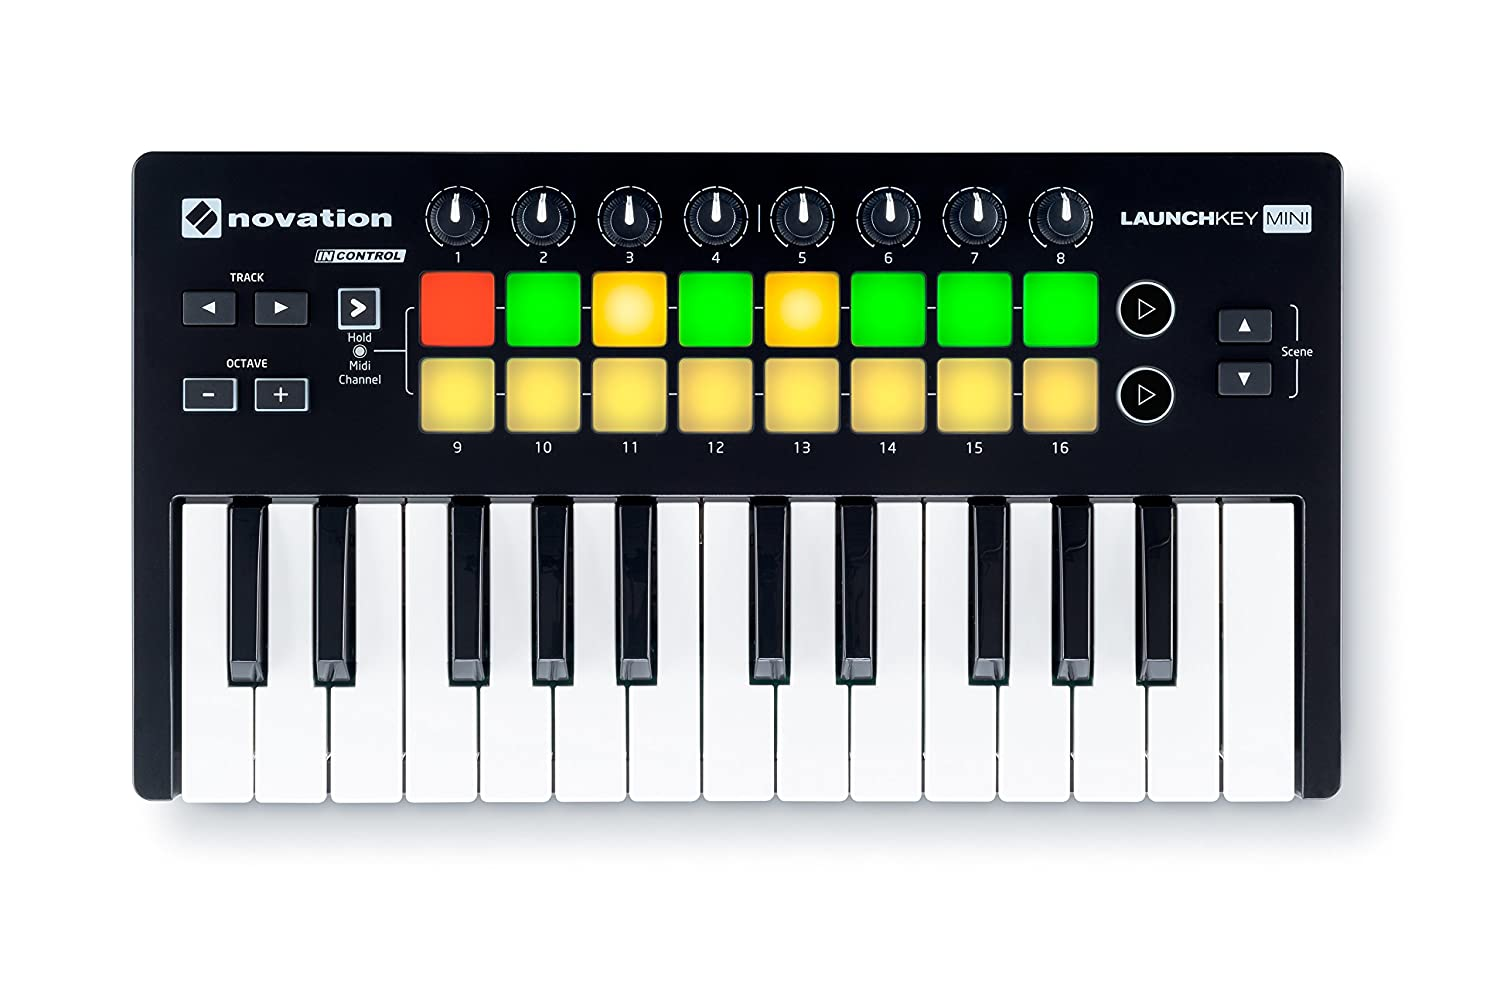 Novation - Launchkey Mini MK2 teclado controlador MIDI - USB Novation LaunchKey Mini MKII AMS-LAUNCHKEY-MINI-MK2